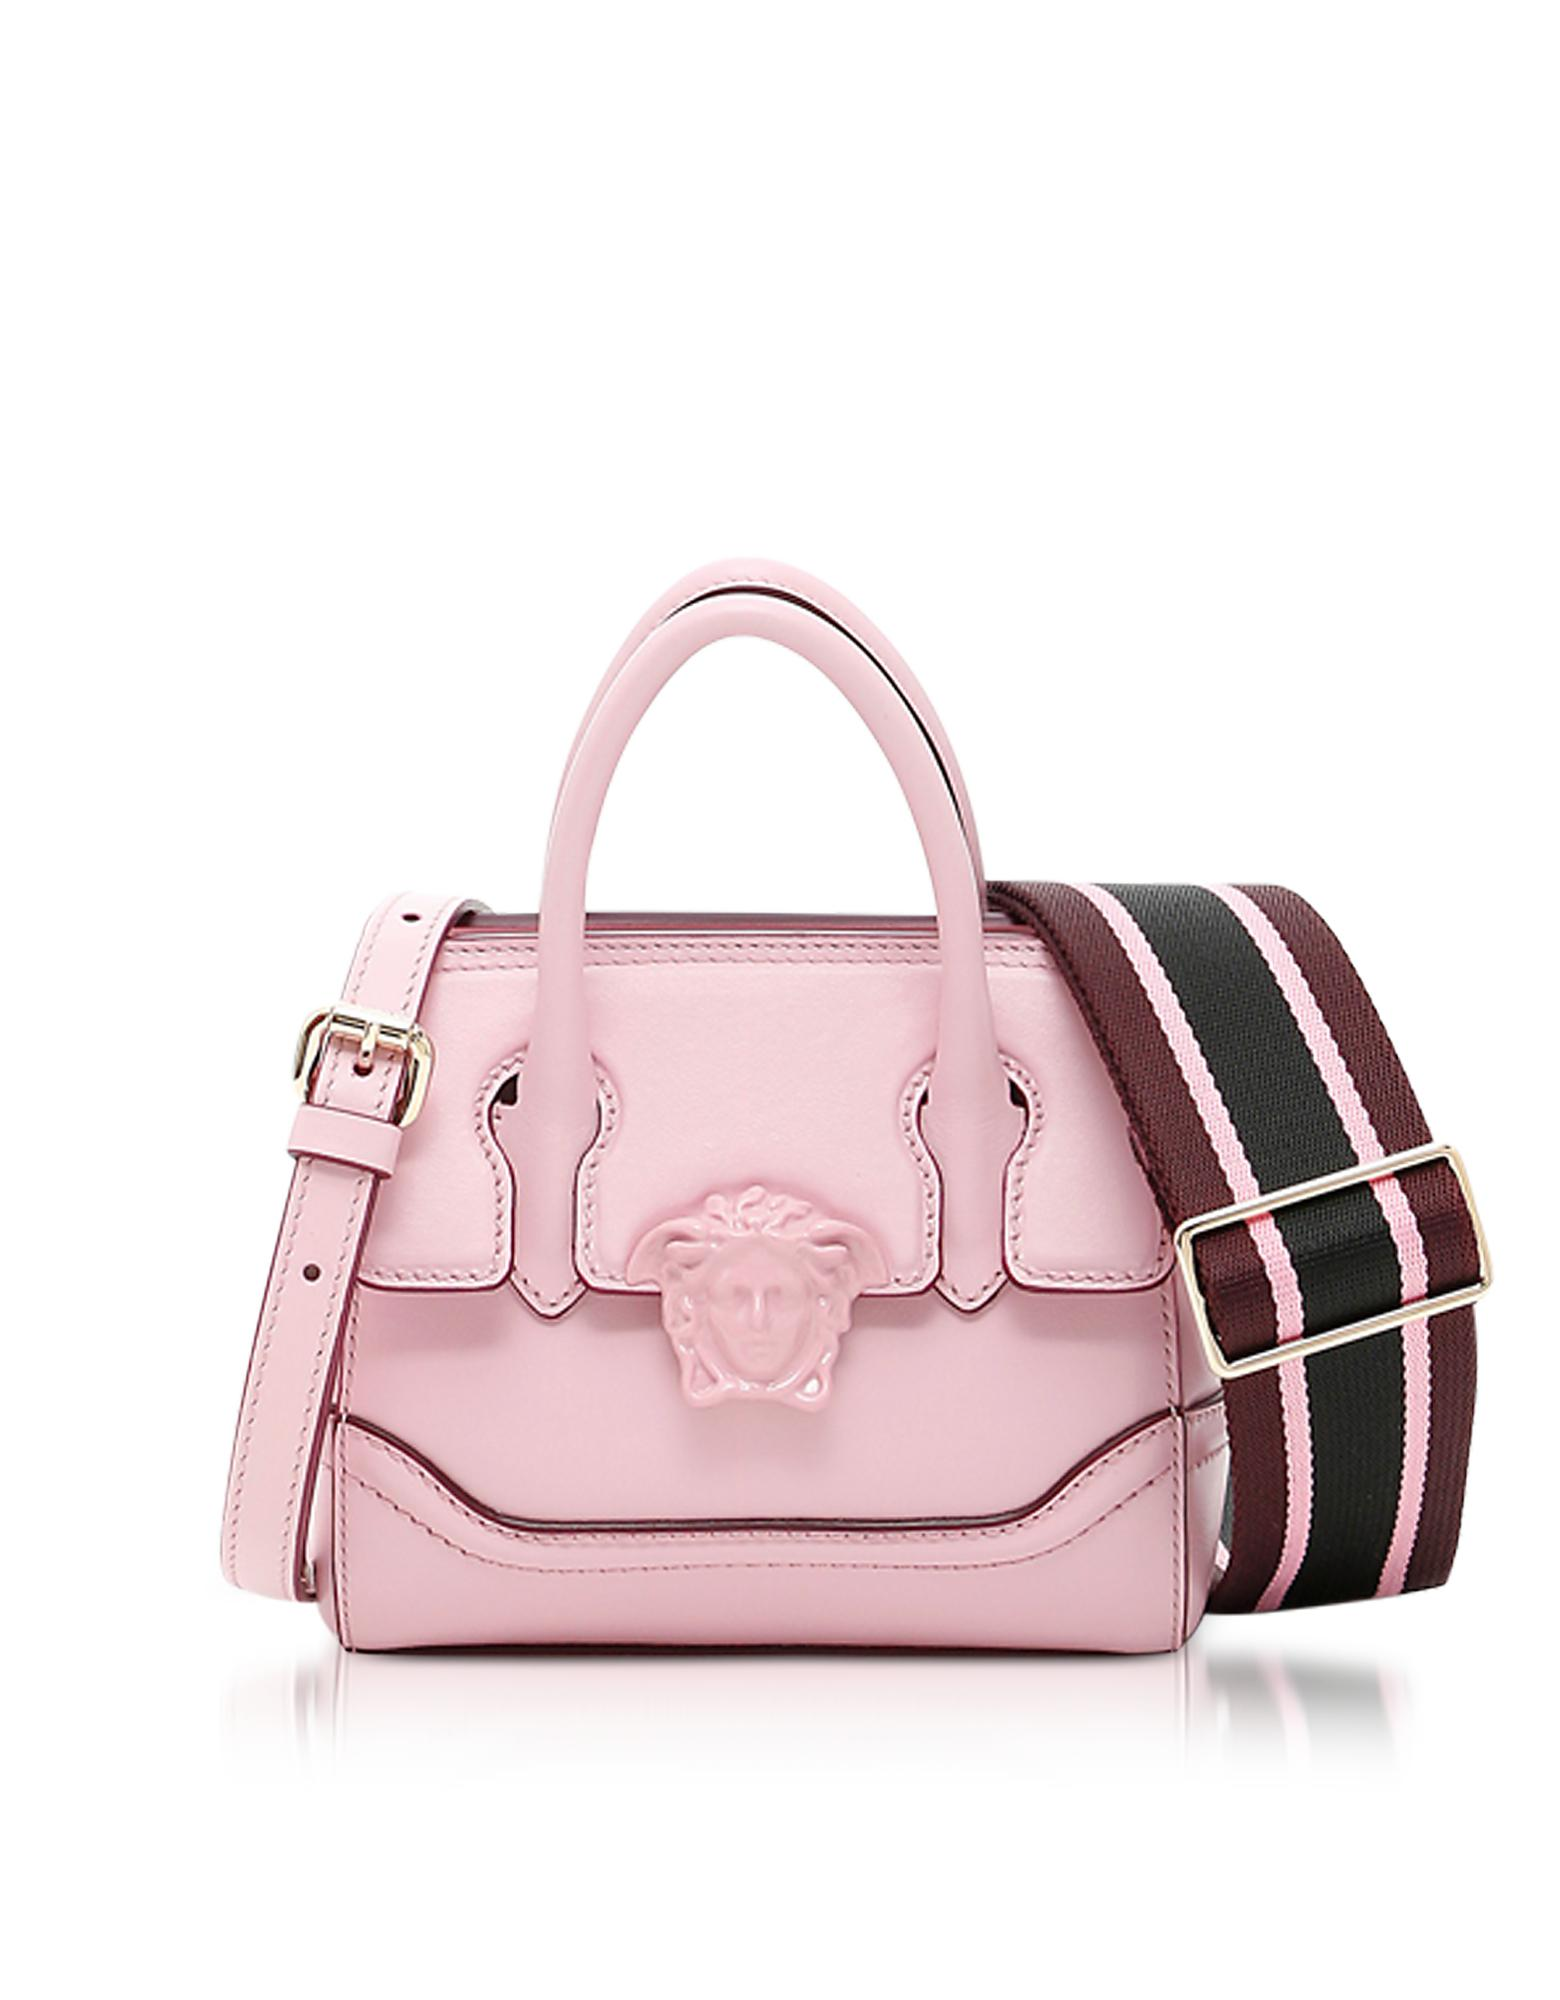 98cbbd1ff615 Lyst - Versace Palazzo Empire Pink Leather Mini Handbag in Pink